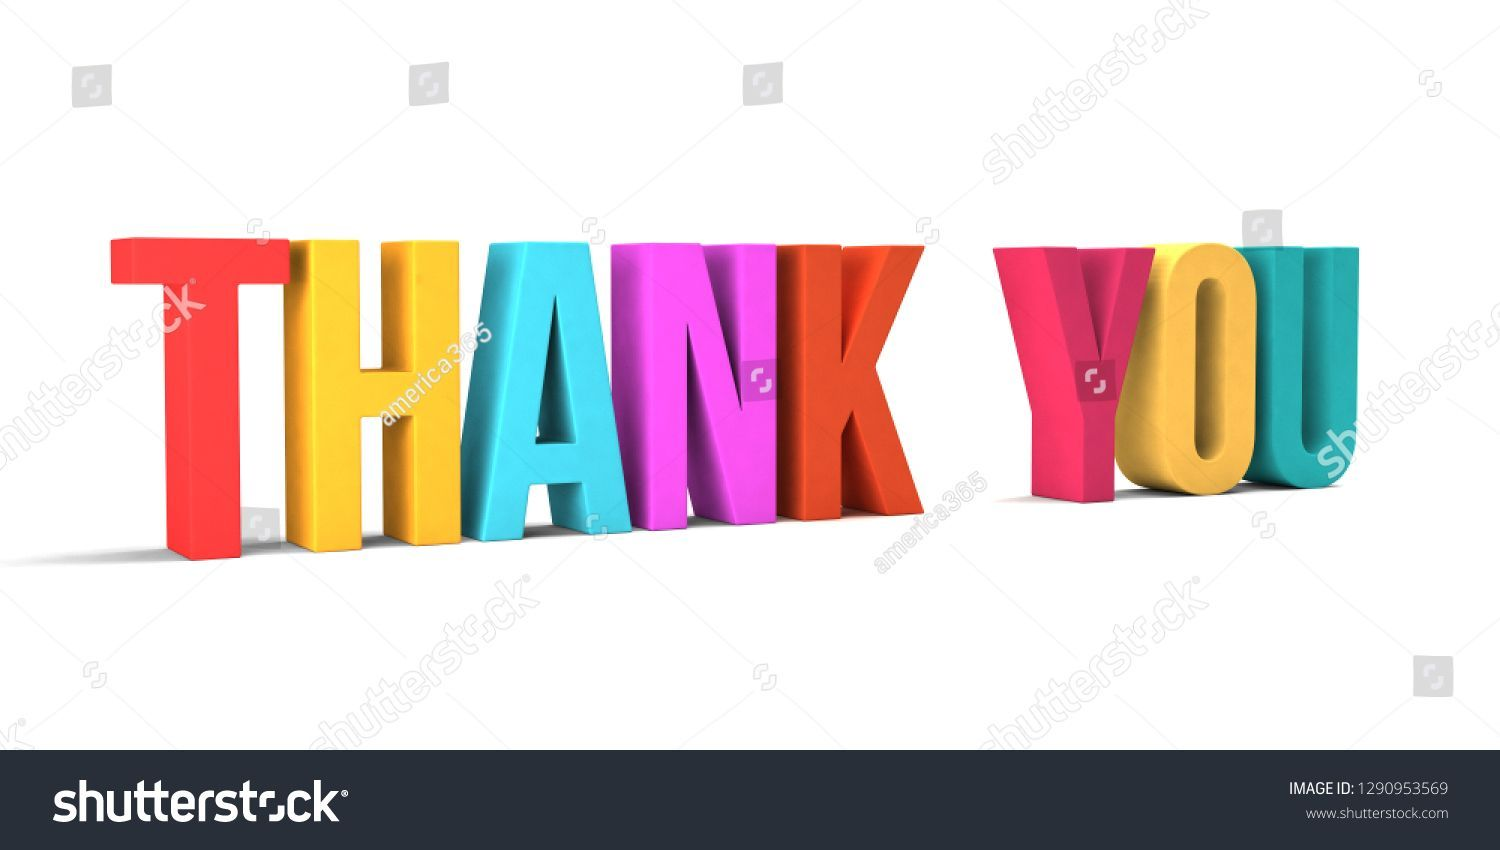 Thank You Word 3d Render Illustration In White Background Text Thank You Background Thankyou Card Greetin Illustration Logo Illustration Photo Editing